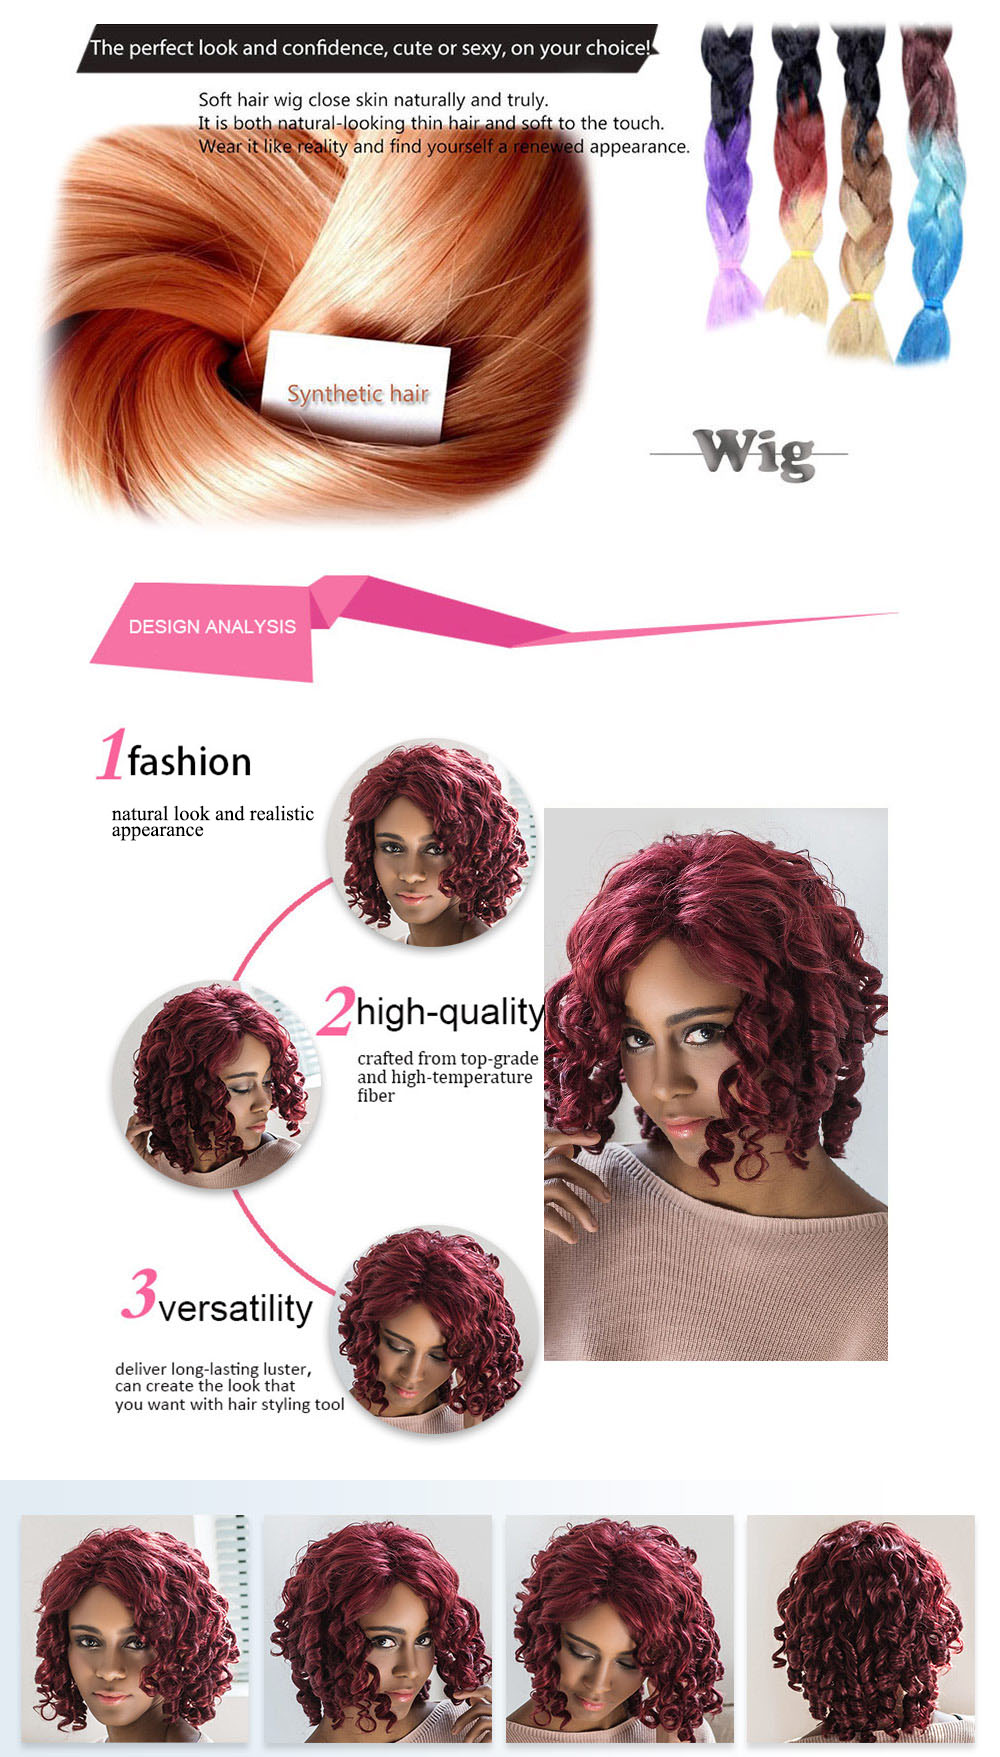 AISIHAIR Women Medium Curly Wine Red Side Bangs Synthetic Wigs Natural Dyeing Hair Style